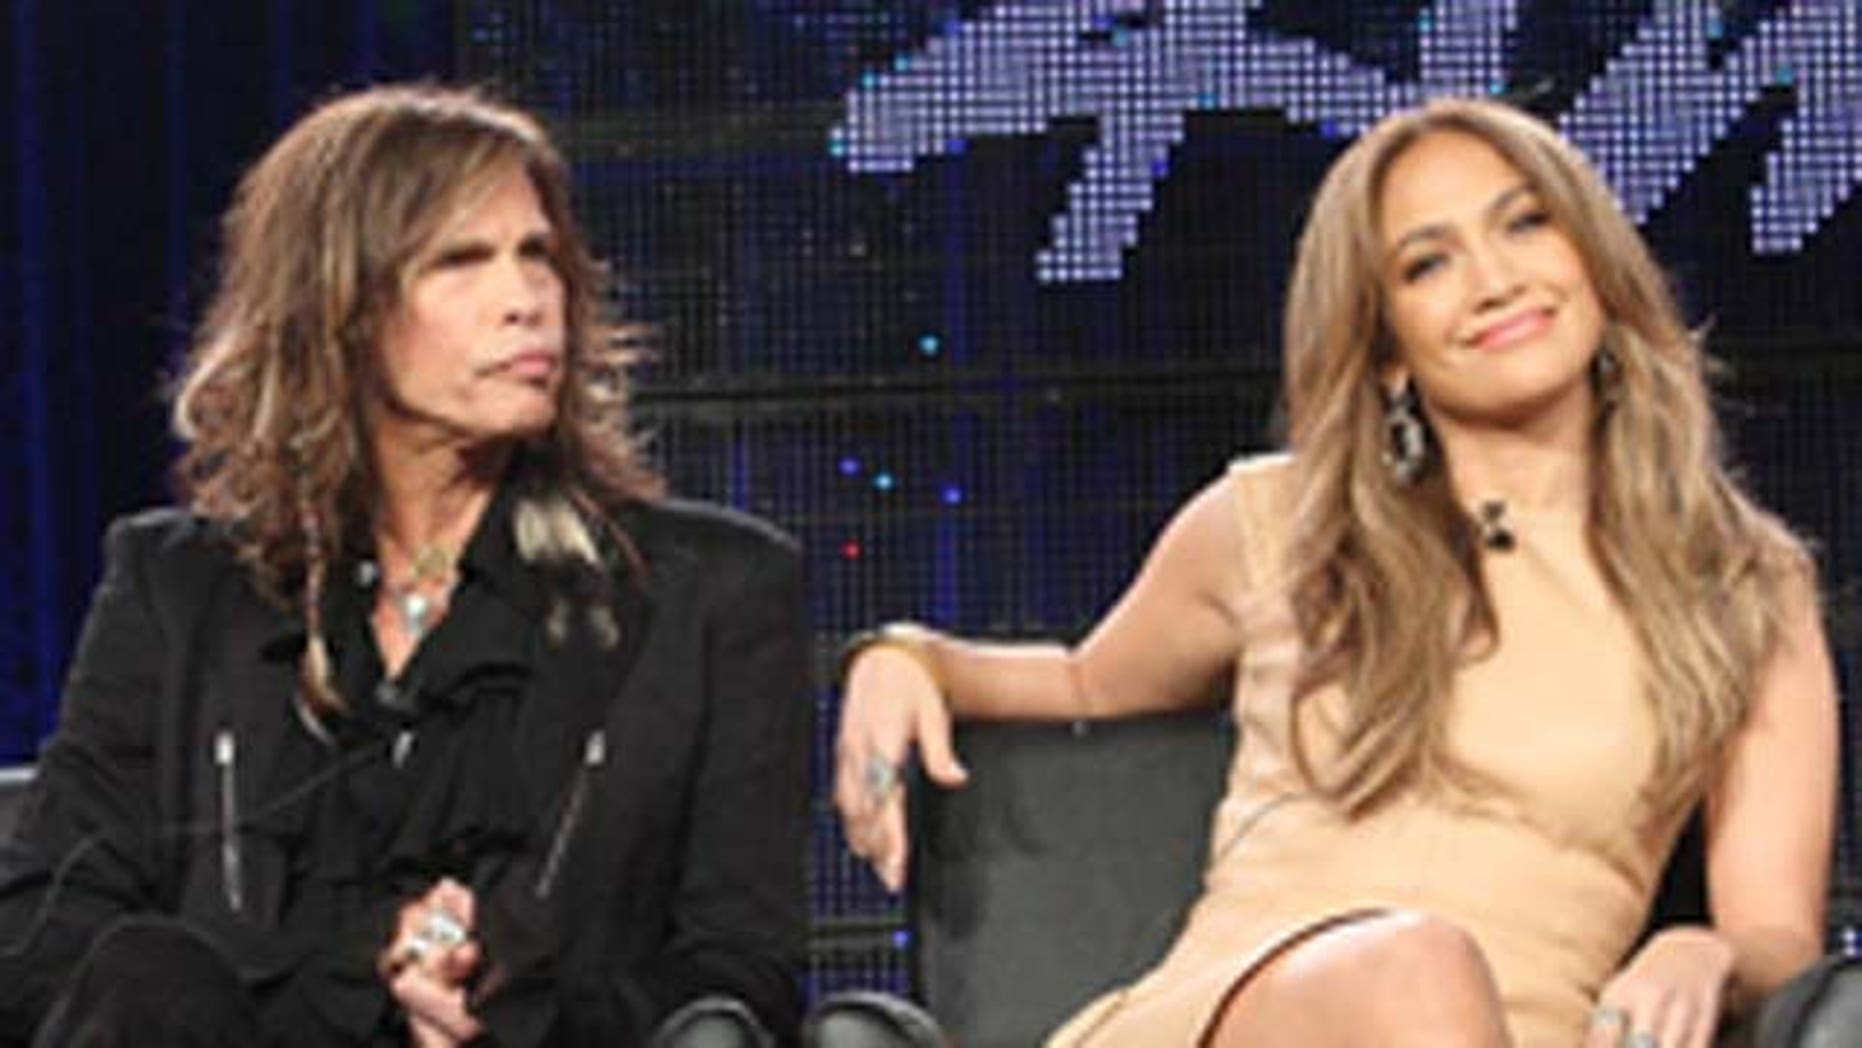 Jan. 11, 2011: Musicians Steven Tyler, Jennifer Lopez and producer Randy Jackson speak onstage during the 'American Idol' panel at the FOX Broadcasting Company portion of the 2011 Winter TCA press tour held at the Langham Hotel in Pasadena, Calif.